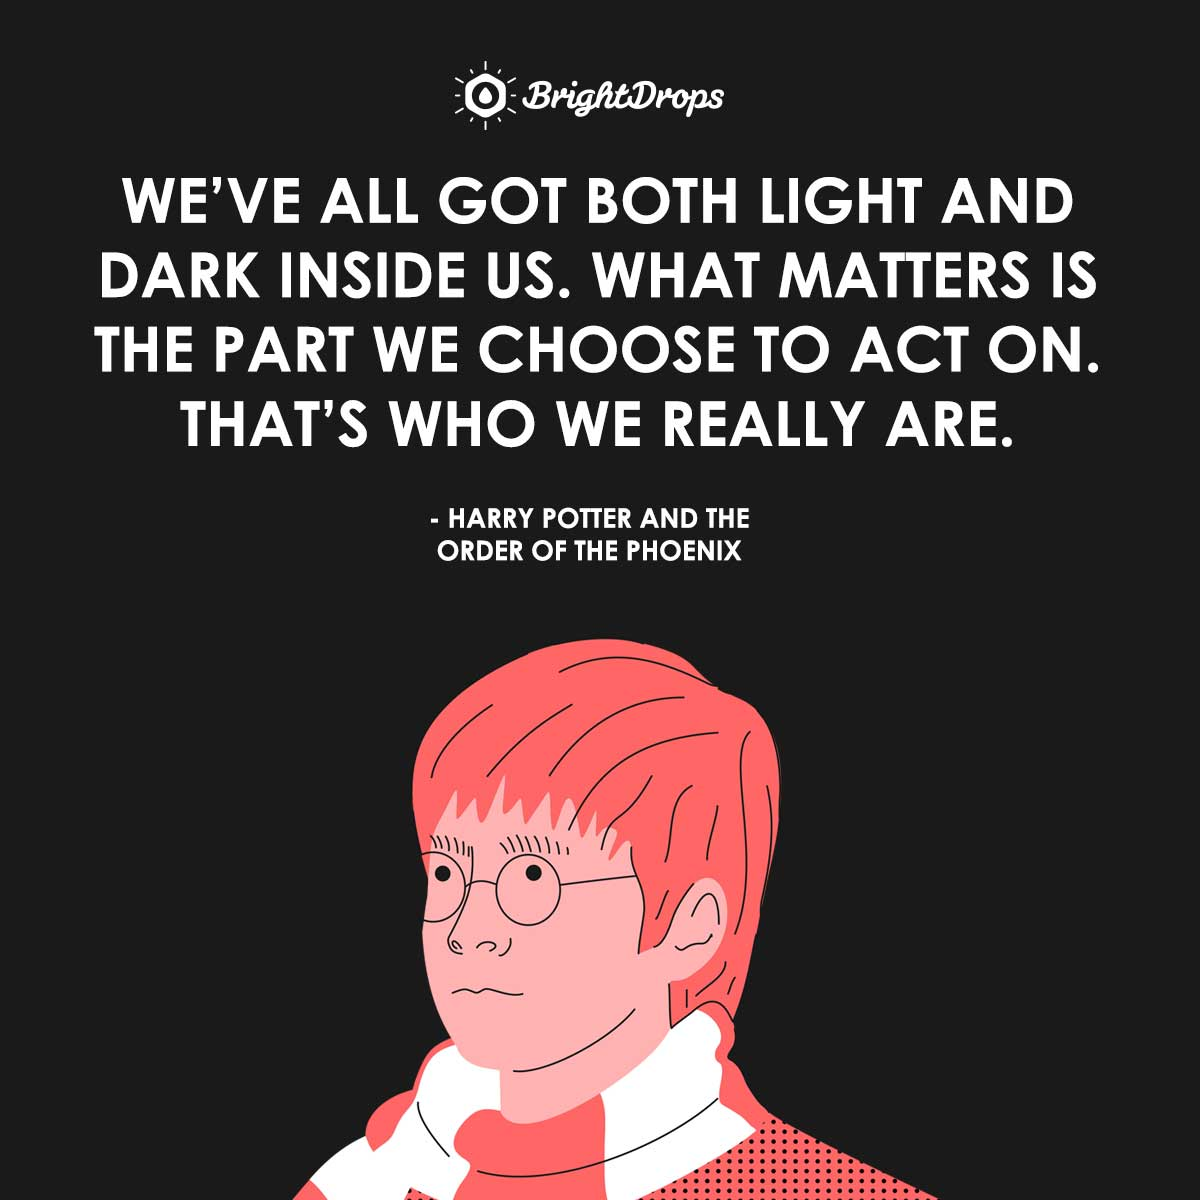 We've all got both light and dark inside us. What matters is the part we choose to act on. That's who we really are. - Harry Potter and the Order of the Phoenix